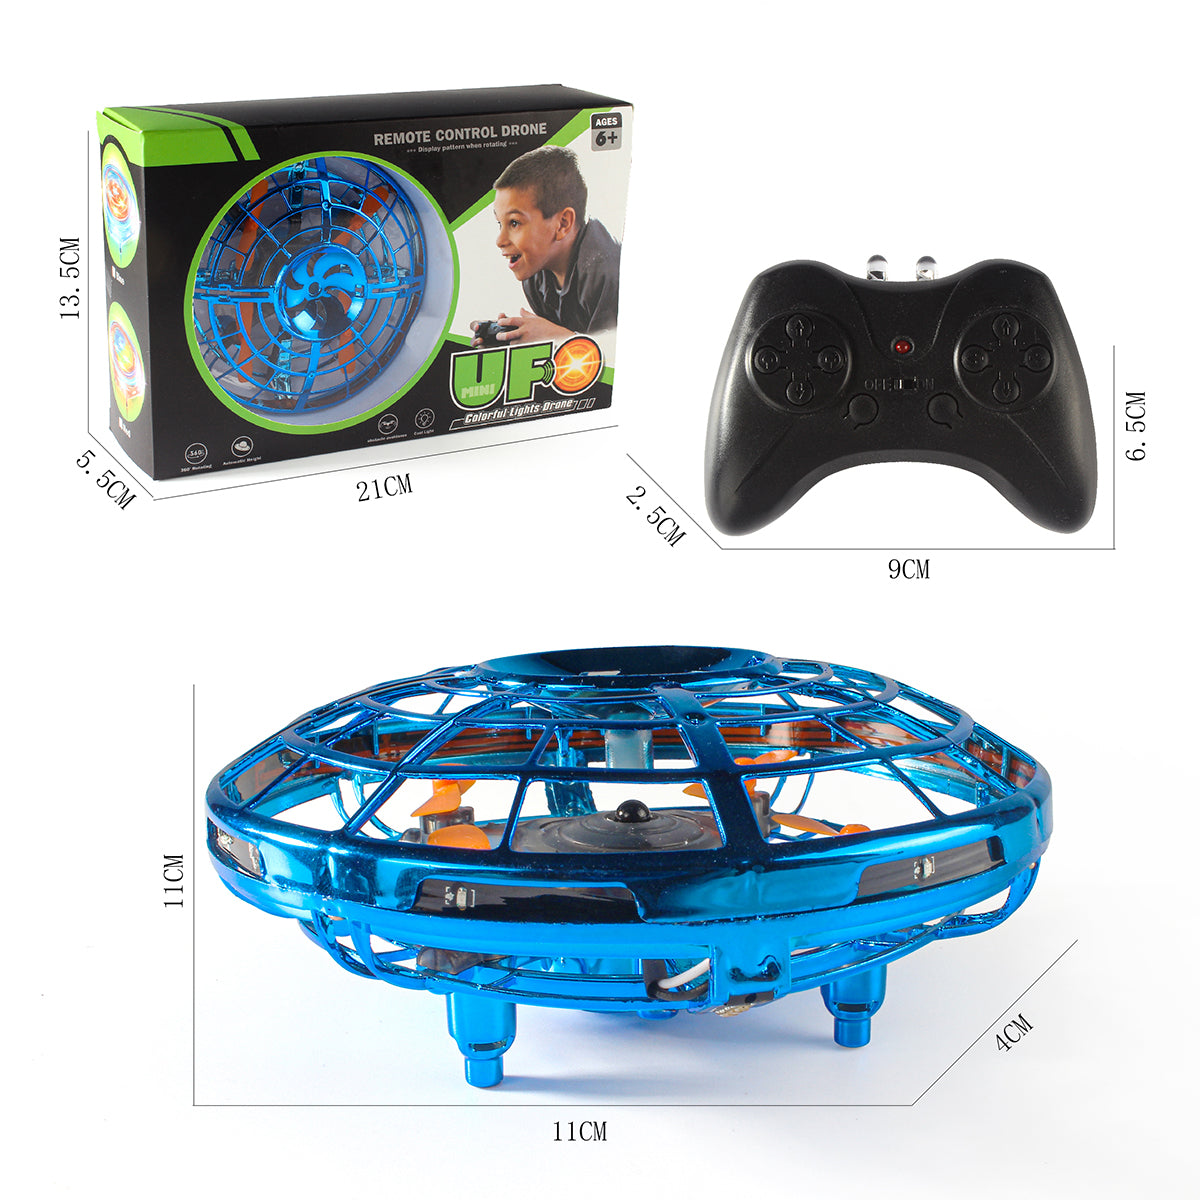 UFO Shaped Mini Drone - Though & Altitude Hold & Colorful - Drone toy for Children